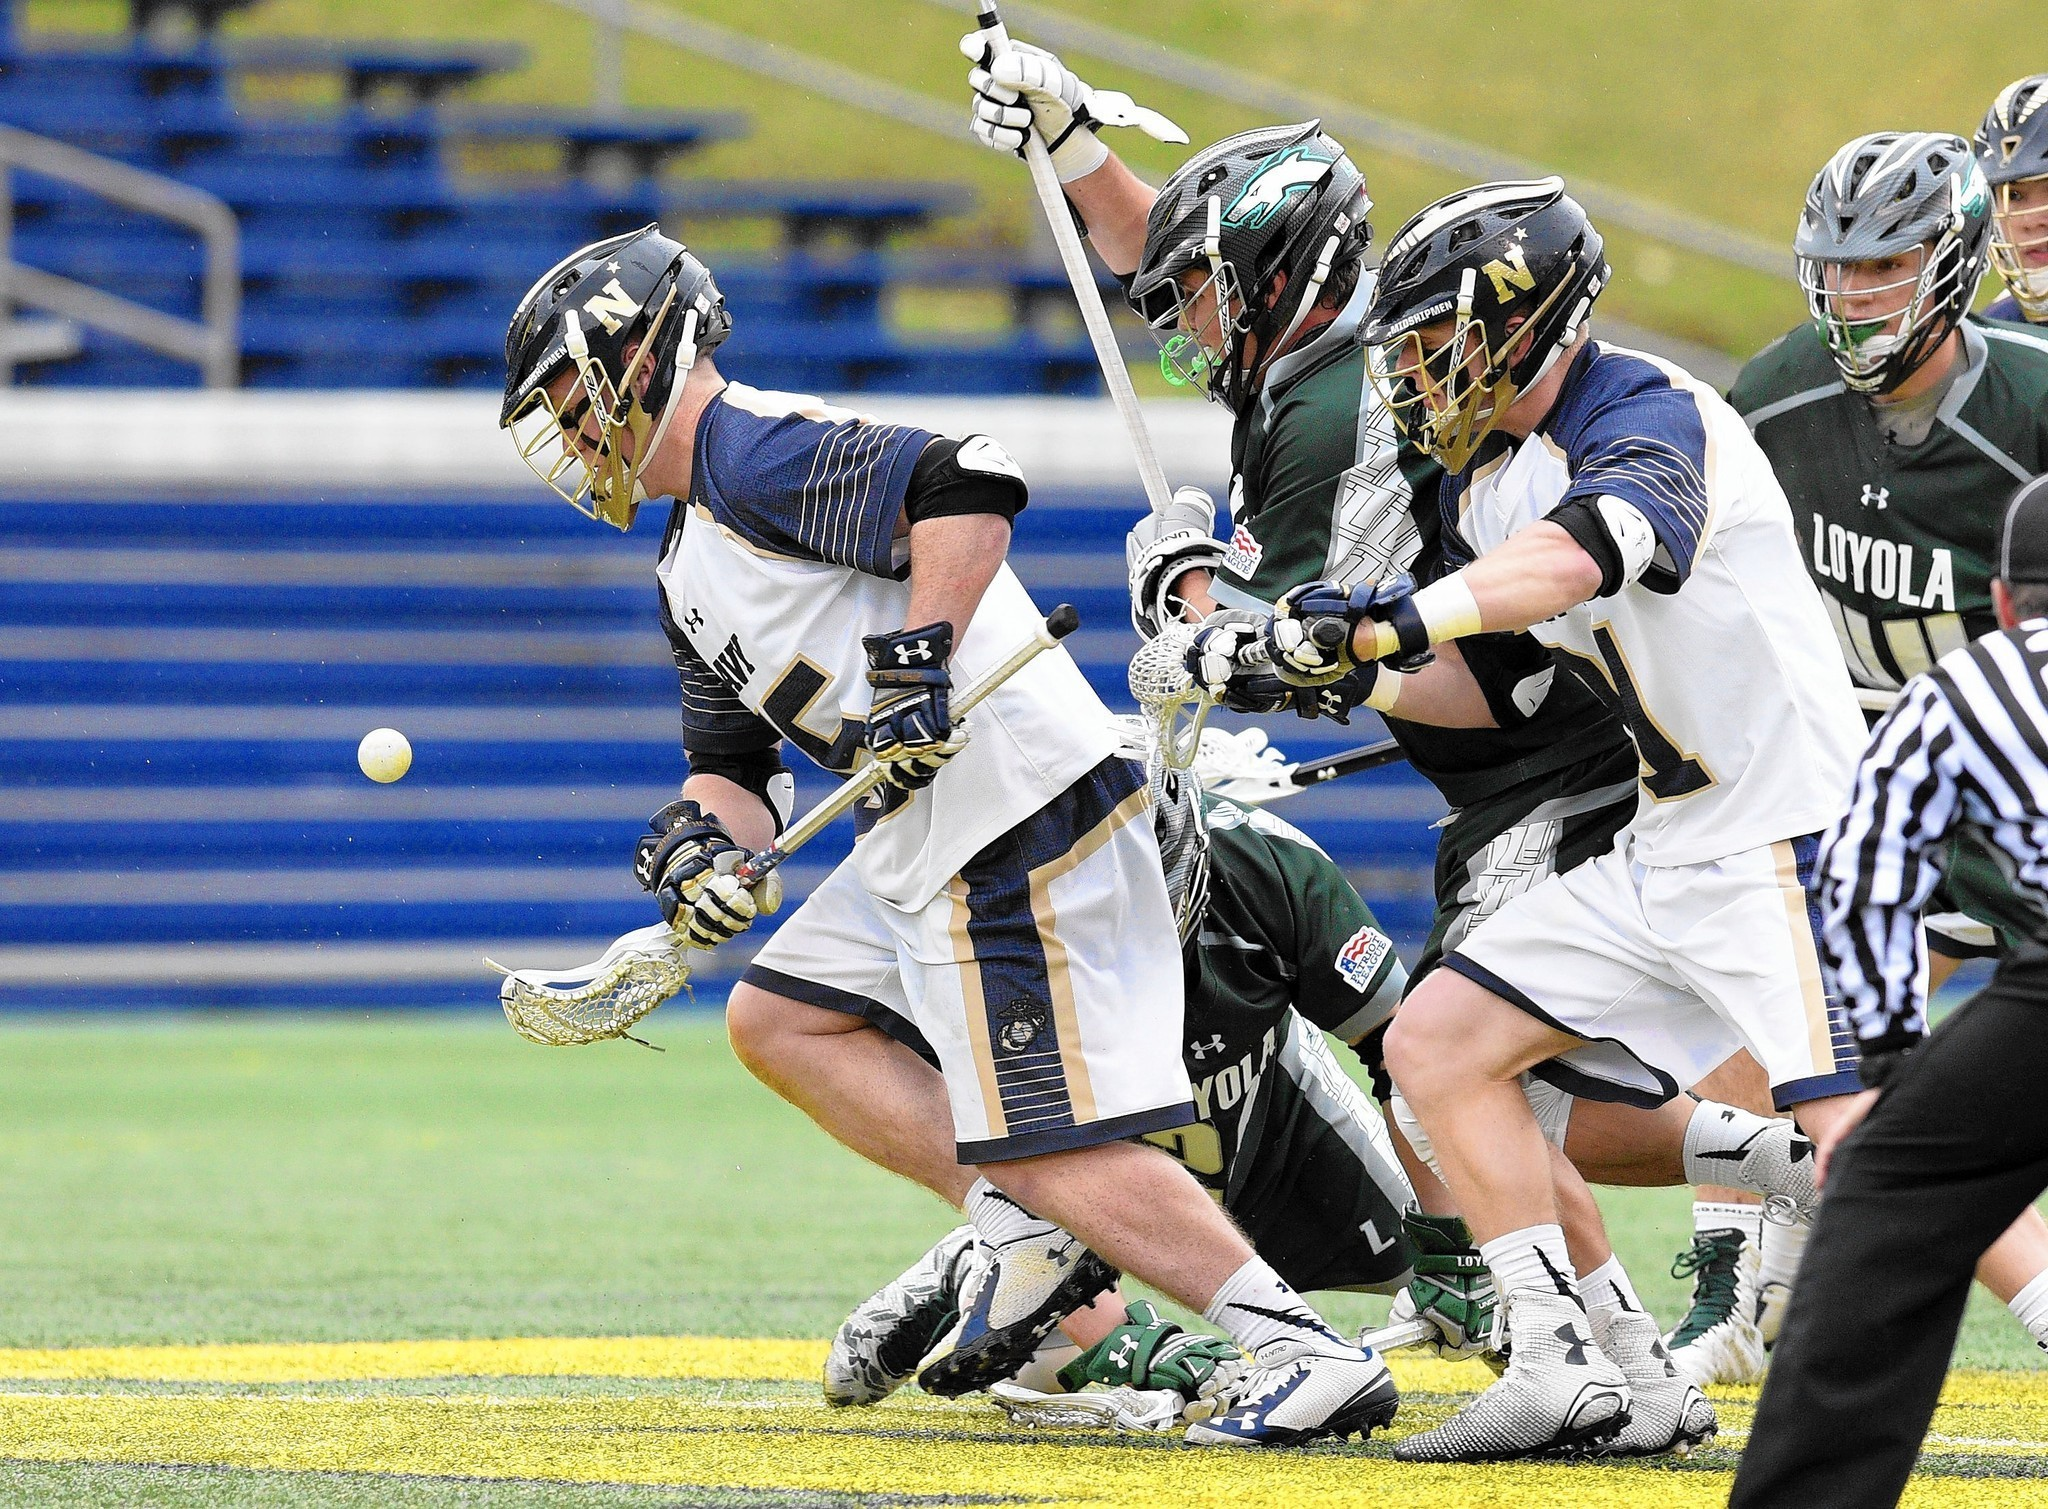 Navy lacrosse notes: Dove breaks Navy career record for faceoff wins